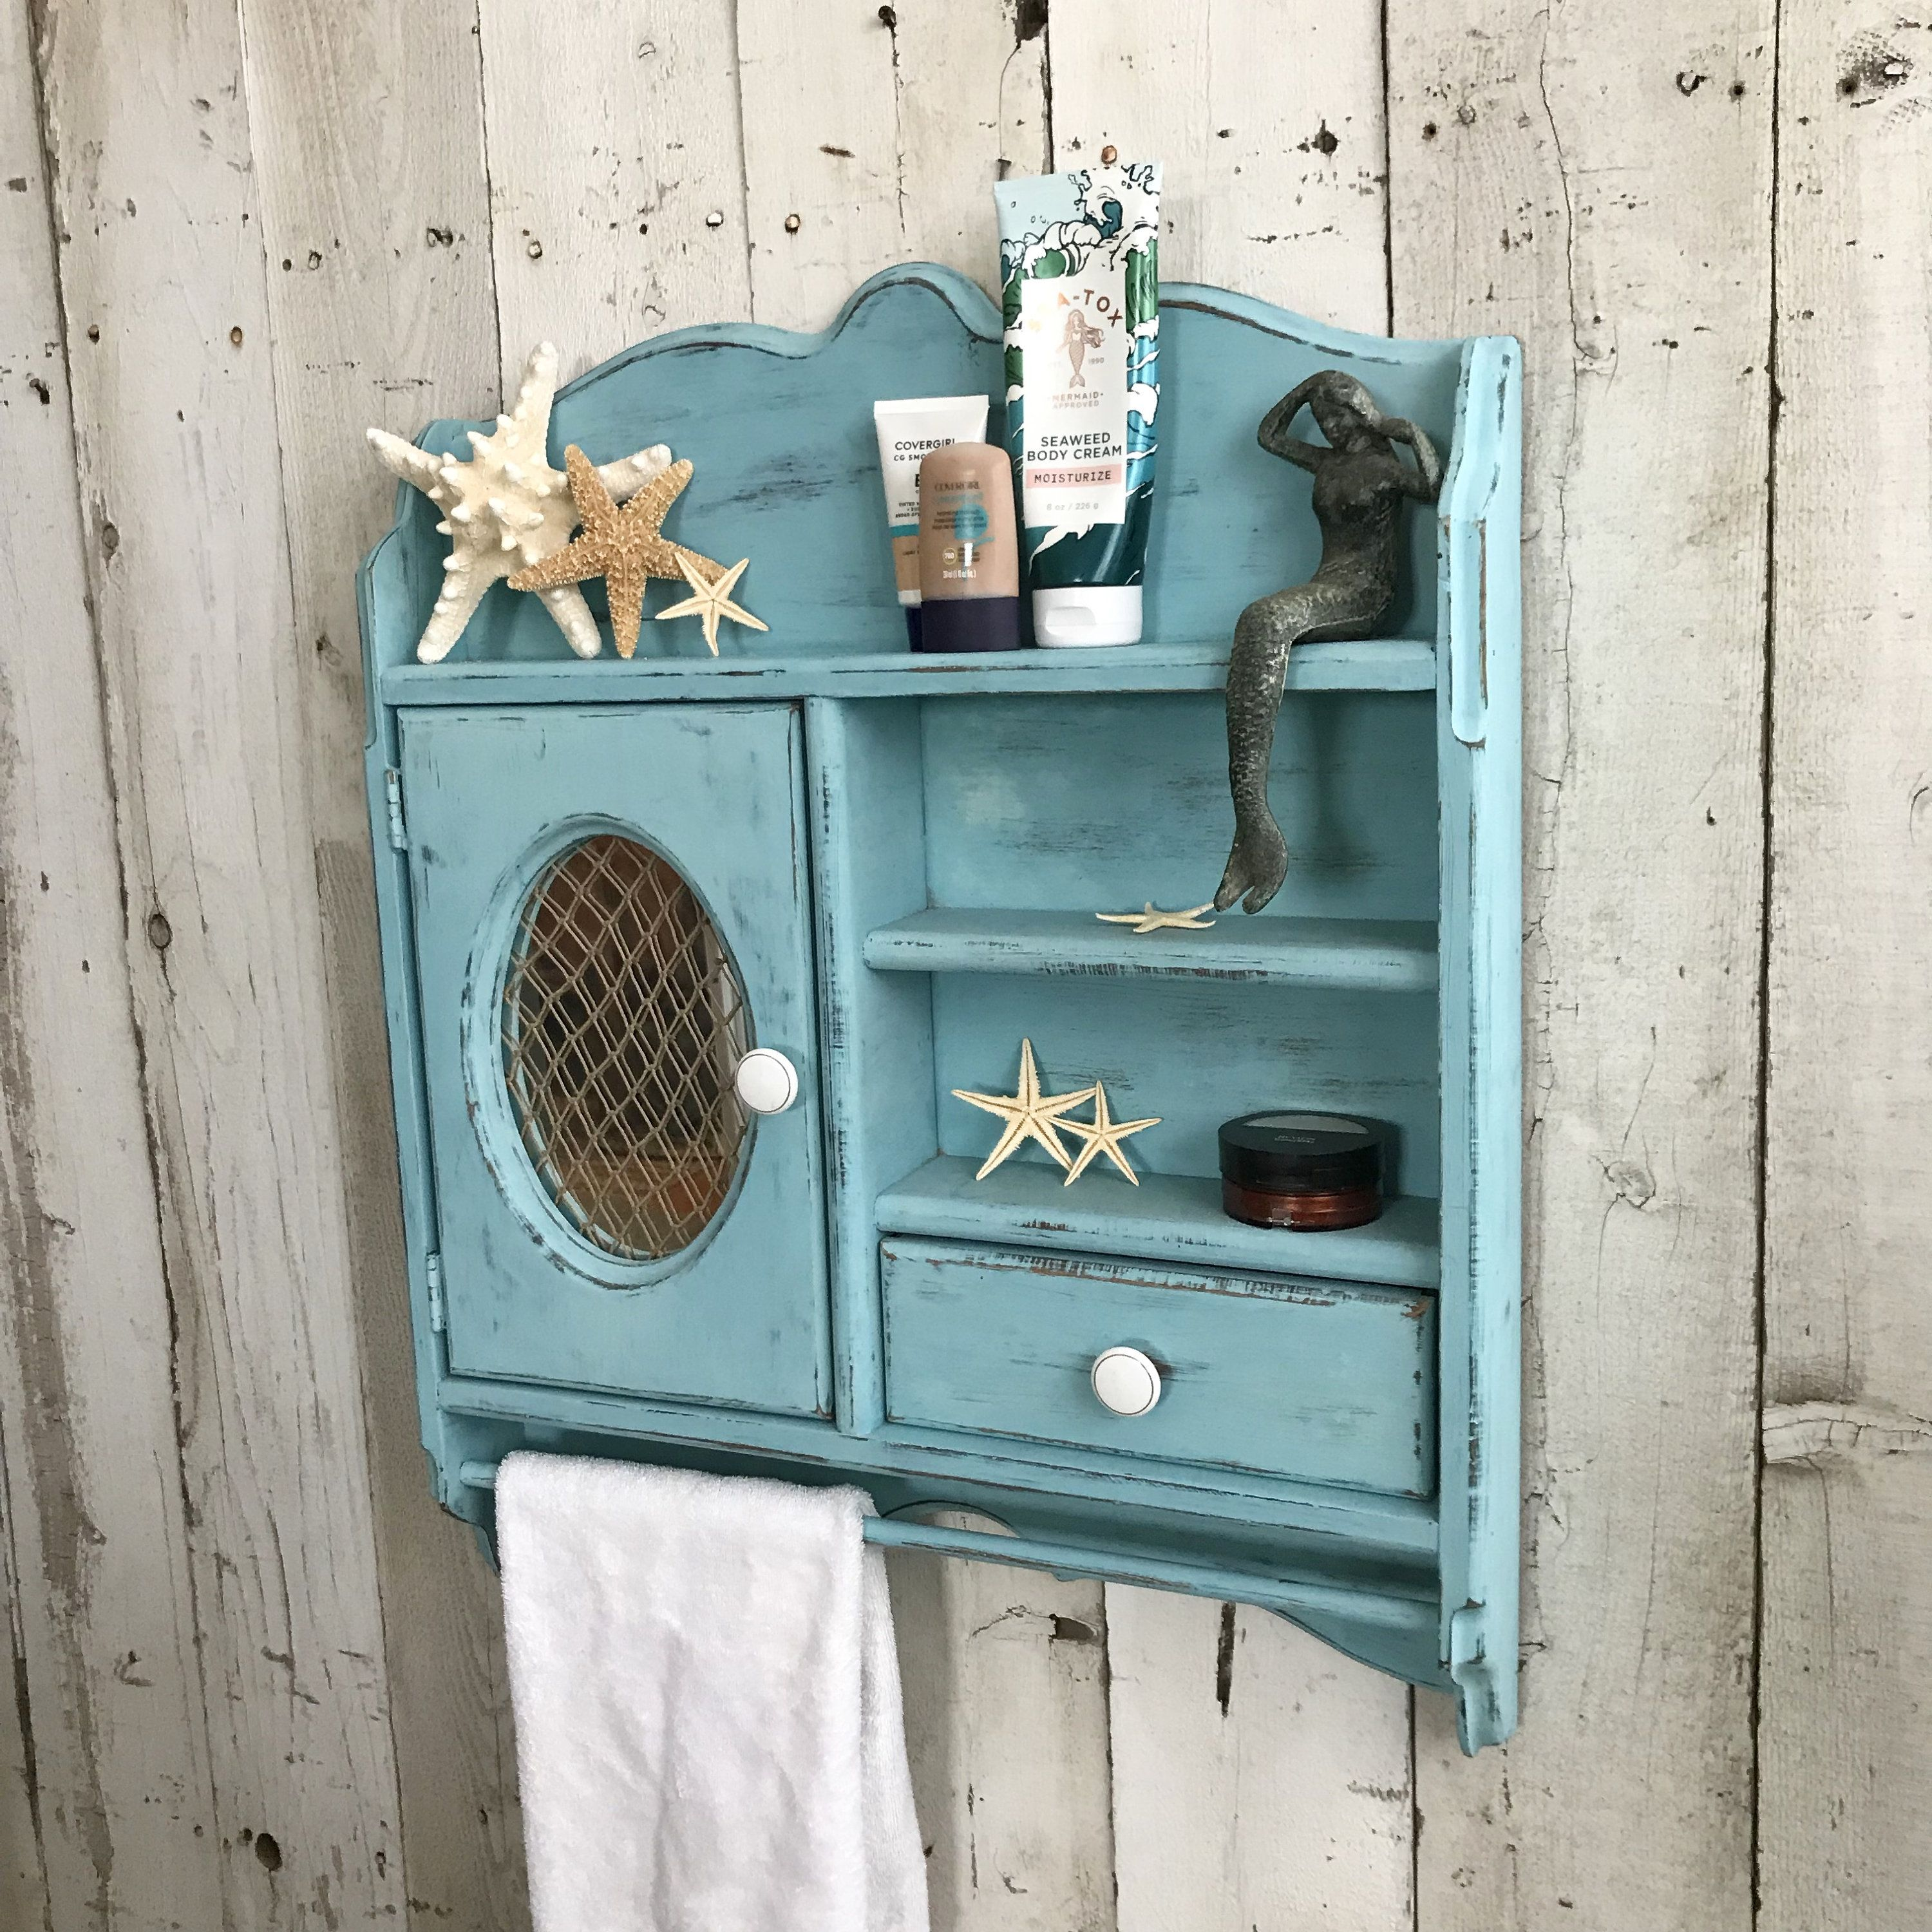 Rustic Wood Wall Cabinet With Towel Holder Mirror Bathroom Cabinet Towel Rack Kitchen Wall Spice Cabinet Turquoise Blue Coastal Beach Rustic Wood Walls Bathroom Cabinets Rustic Bathroom Cabinet